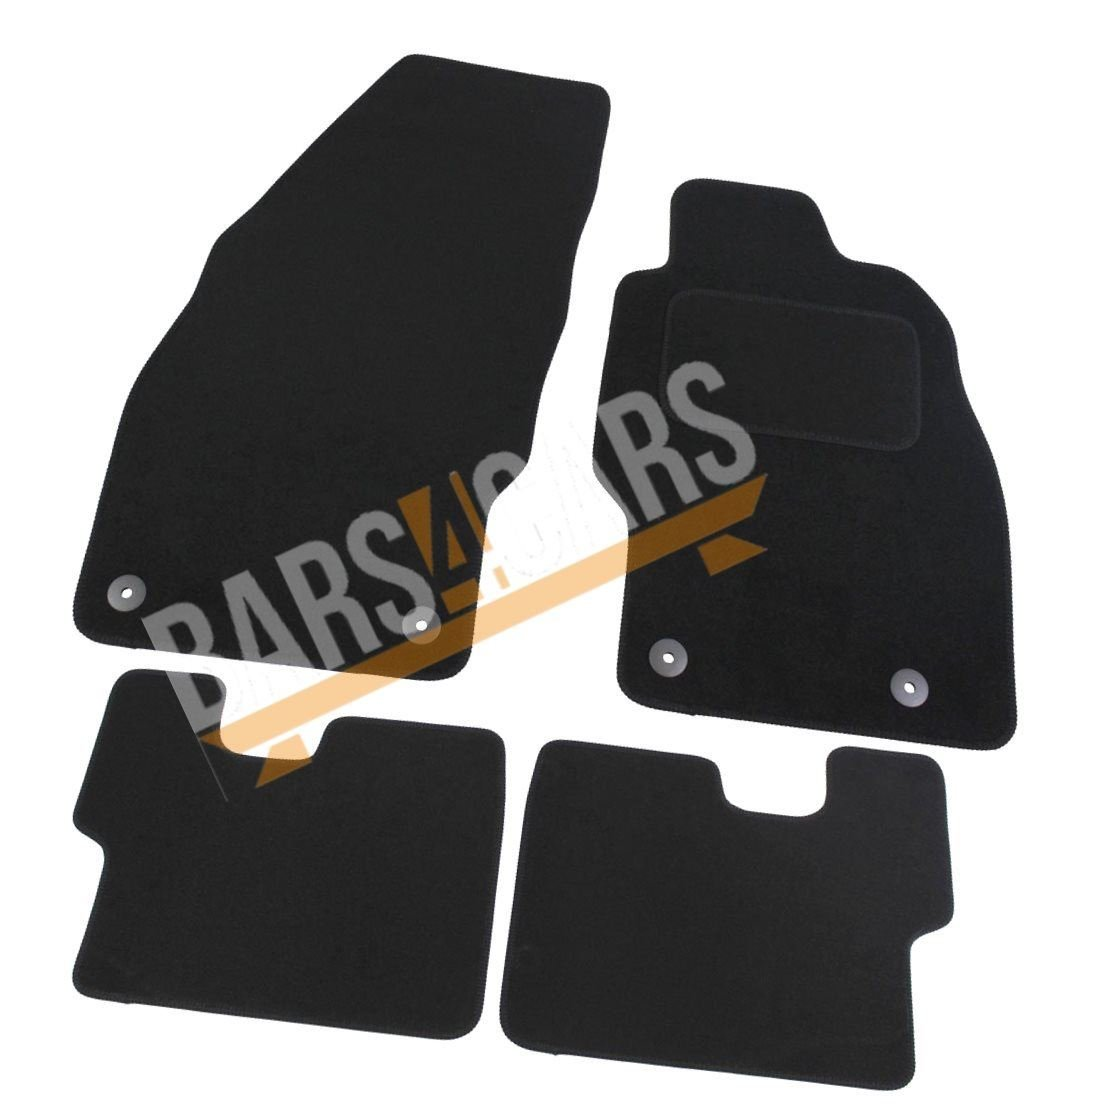 UKB4C Fully Tailored Carpet Car Mats for Vauxhall Corsa E 14> Set of 4 With 4 Clips